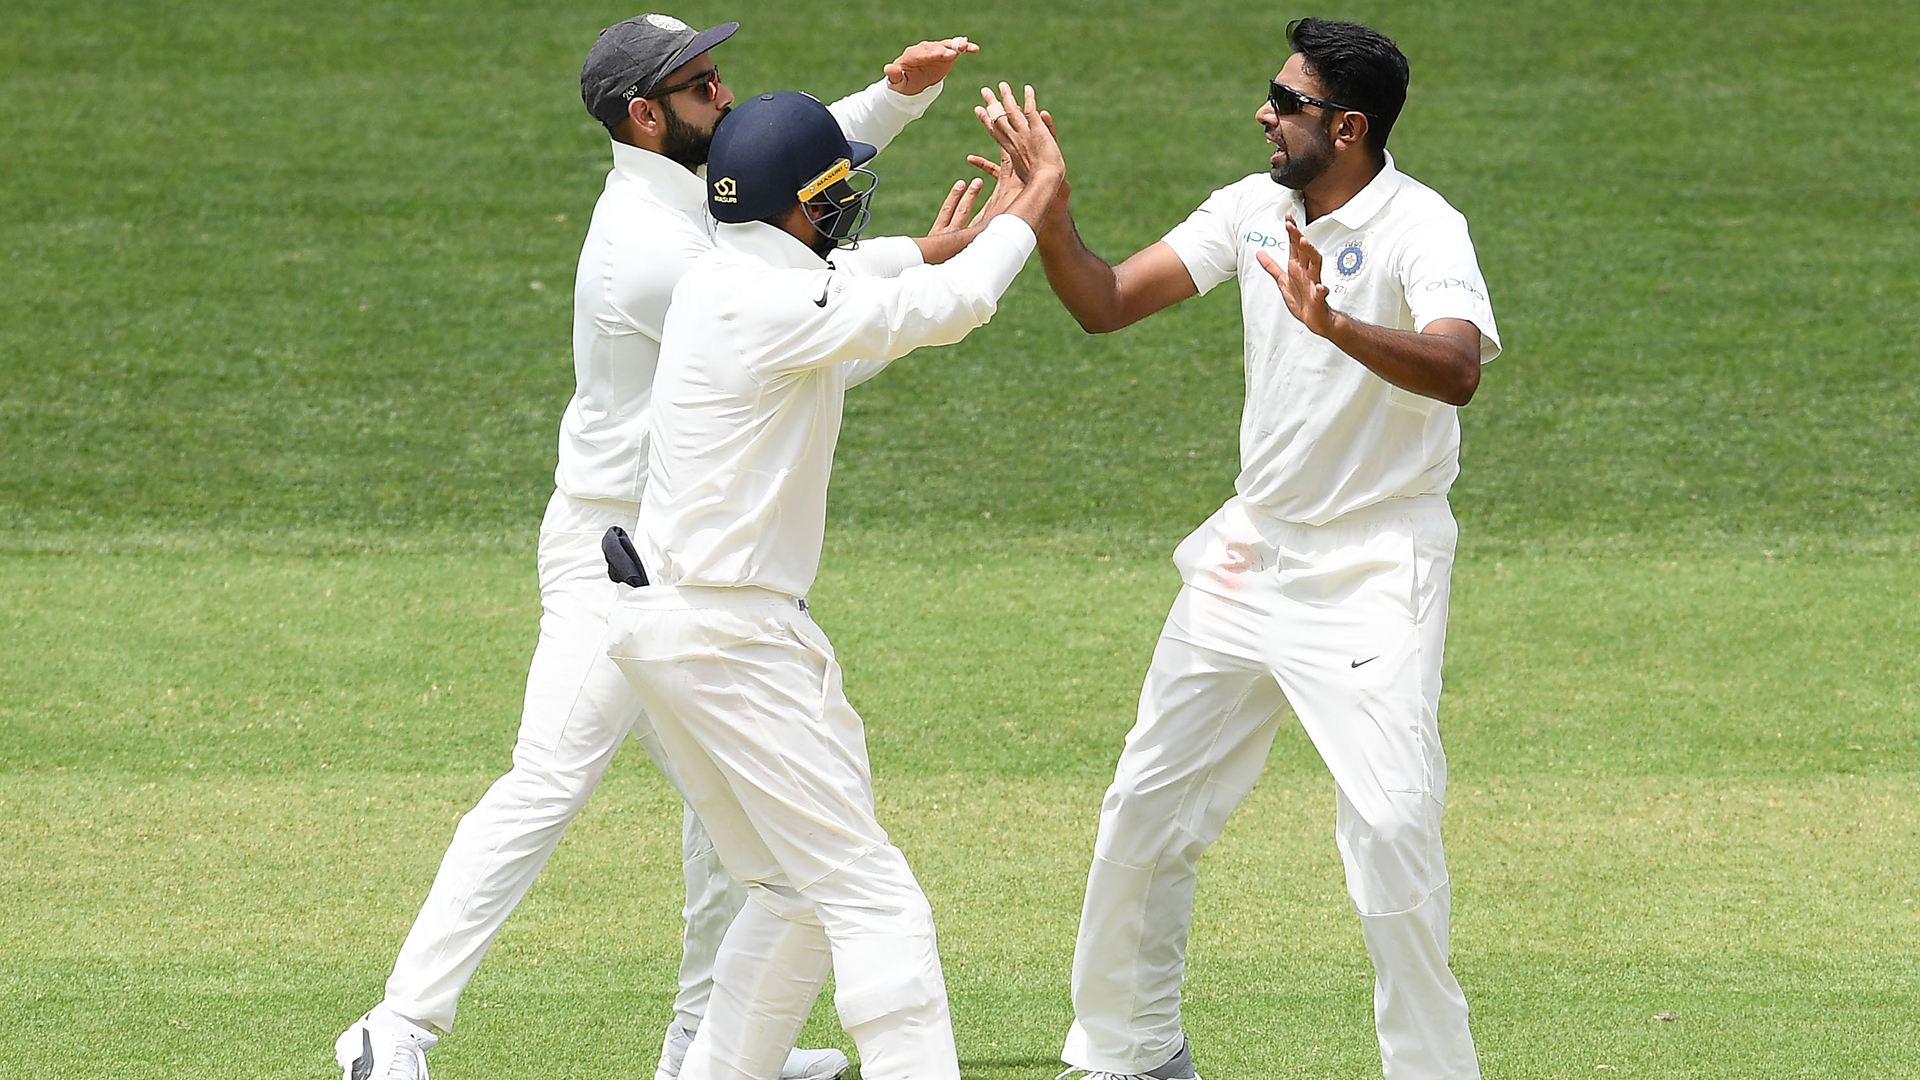 Australia were reduced to 191-7 as India took control of the opening Test in Adelaide.